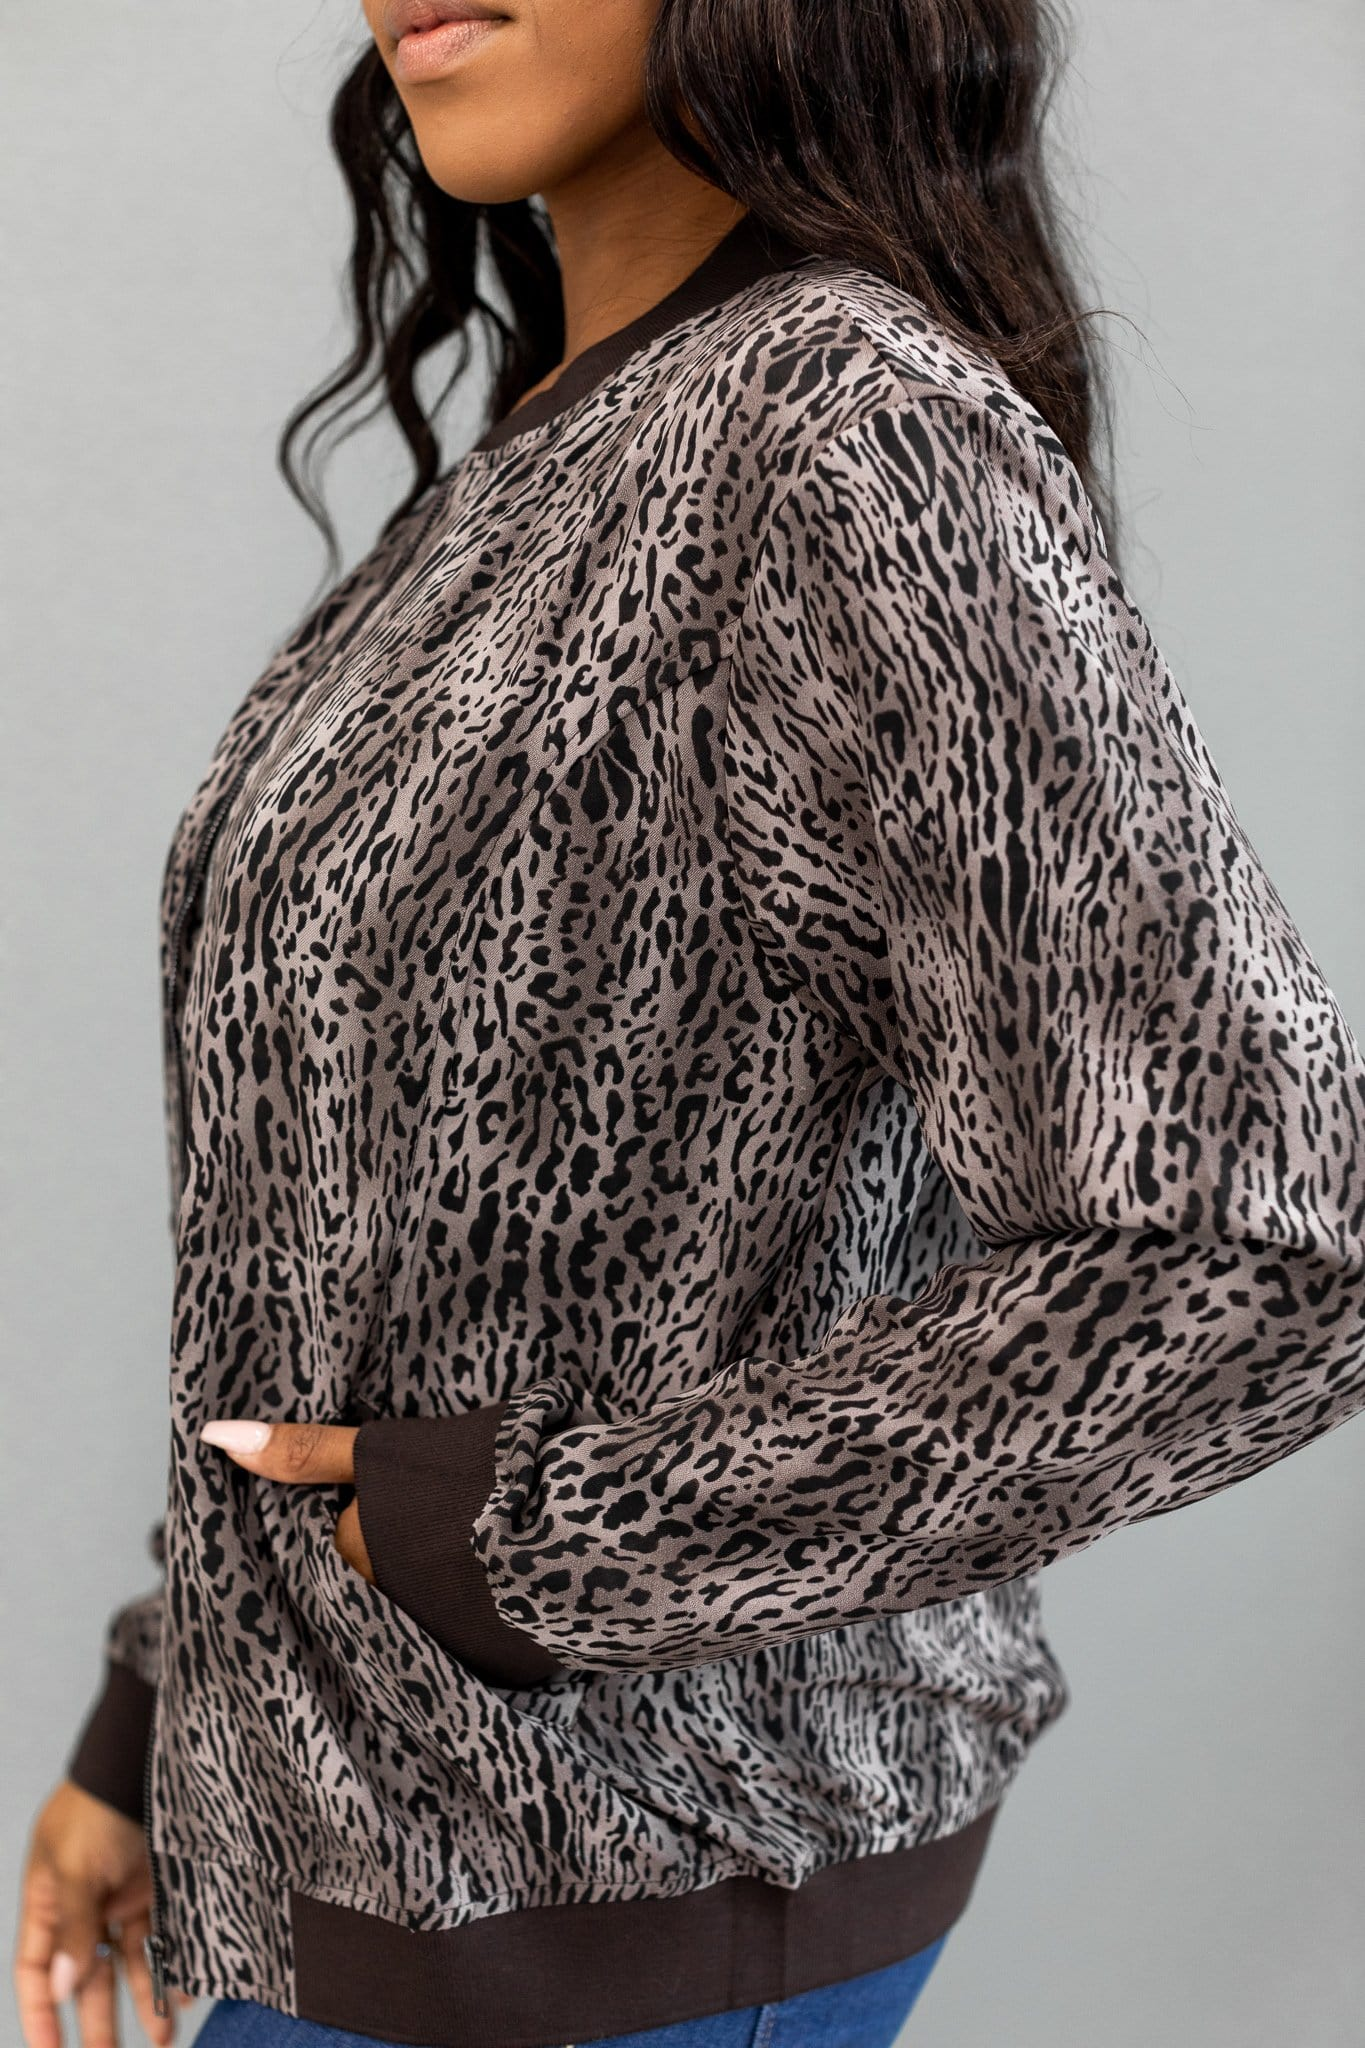 The Hawthorne Bomber Jacket in Animal Print